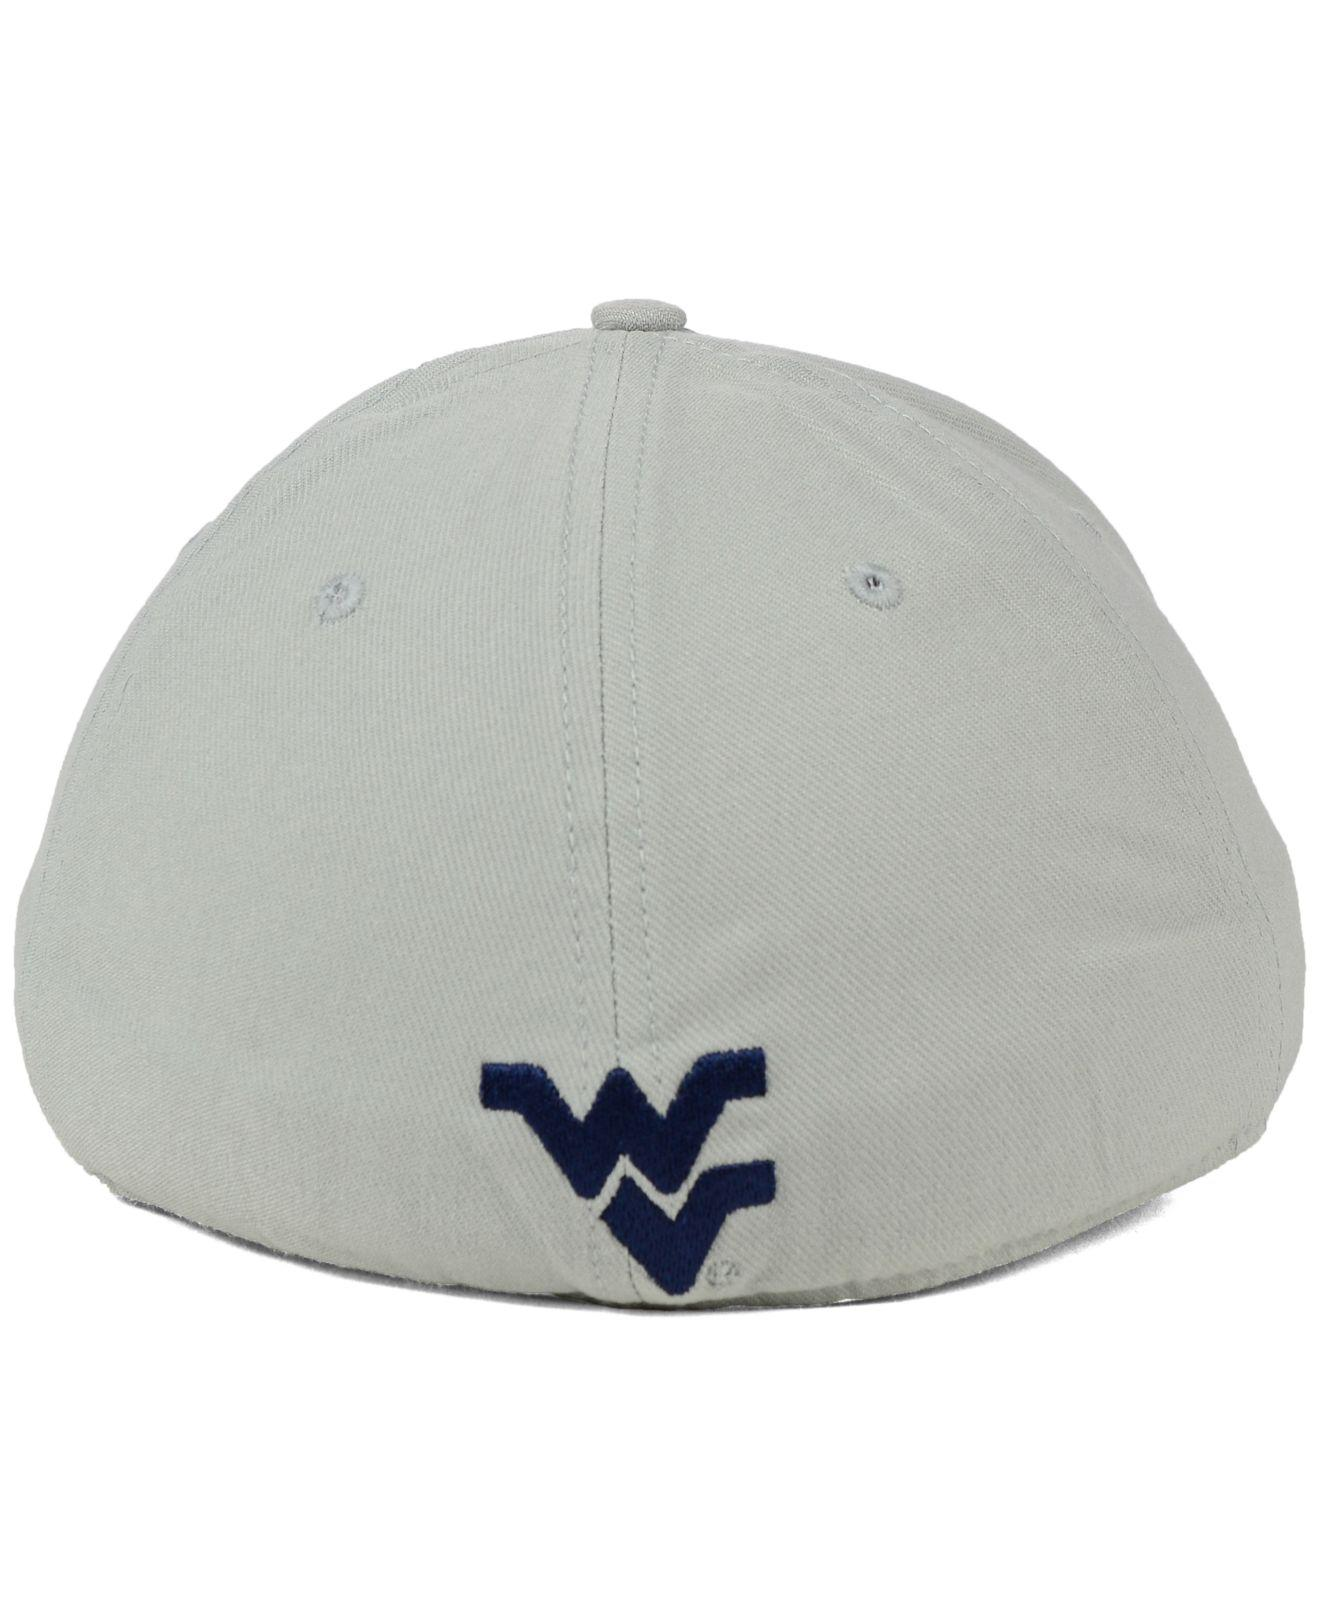 the latest 79aba b5090 ... where to buy lyst nike west virginia mountaineers classic swoosh cap in  gray 083e2 4707e